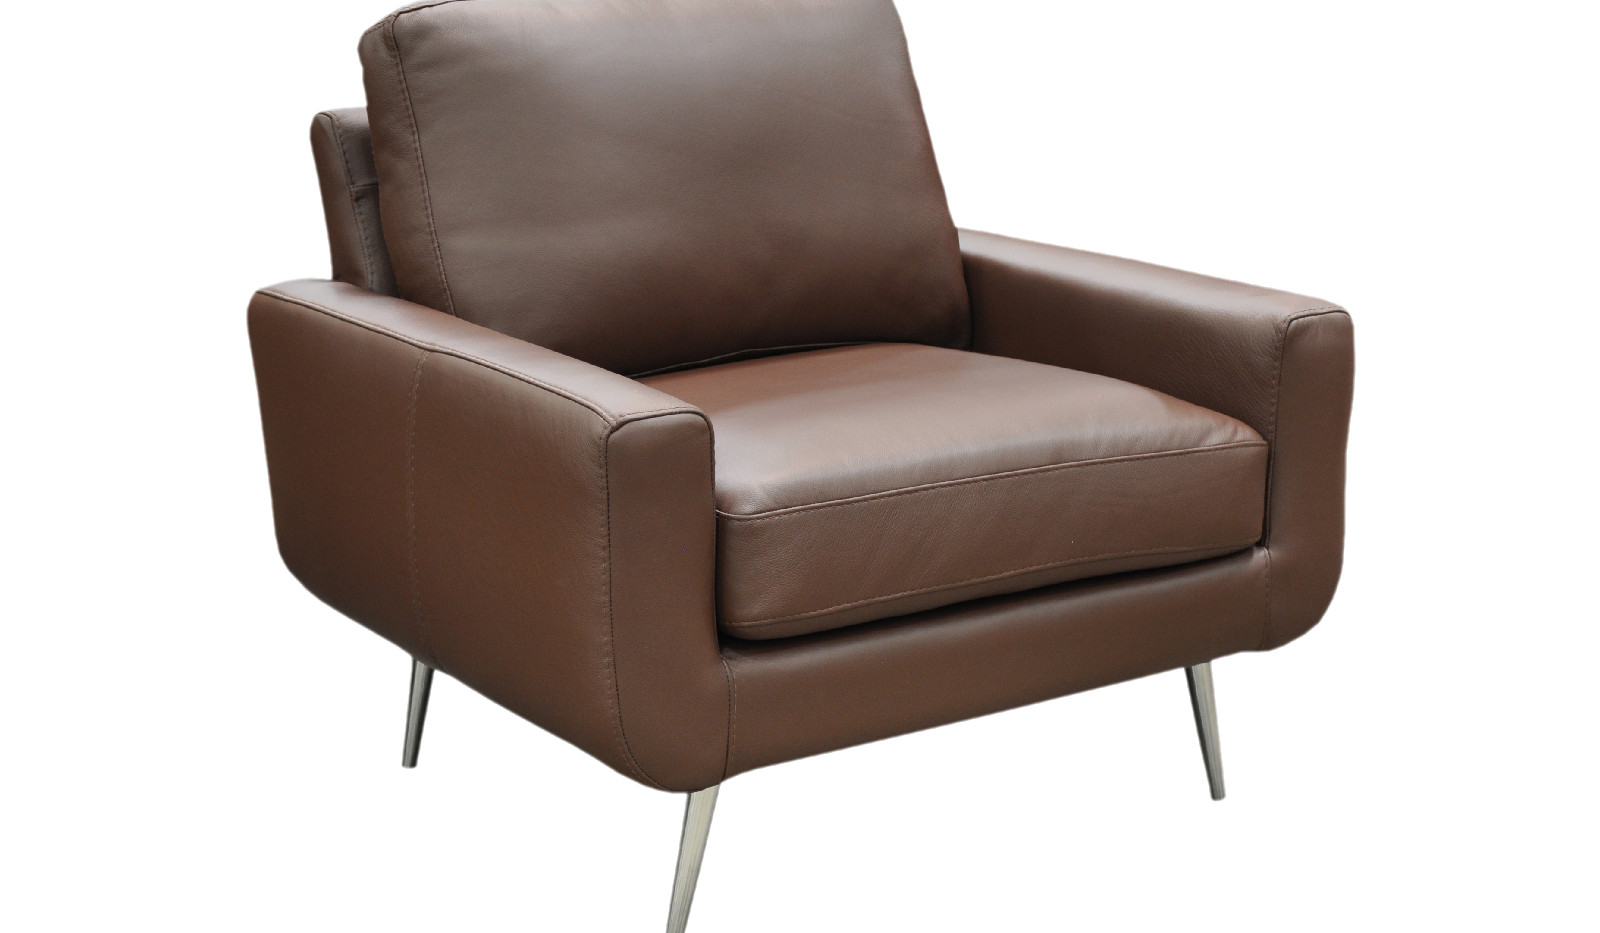 Harvey-Chair-Softsations-Mocha-Angled-SL